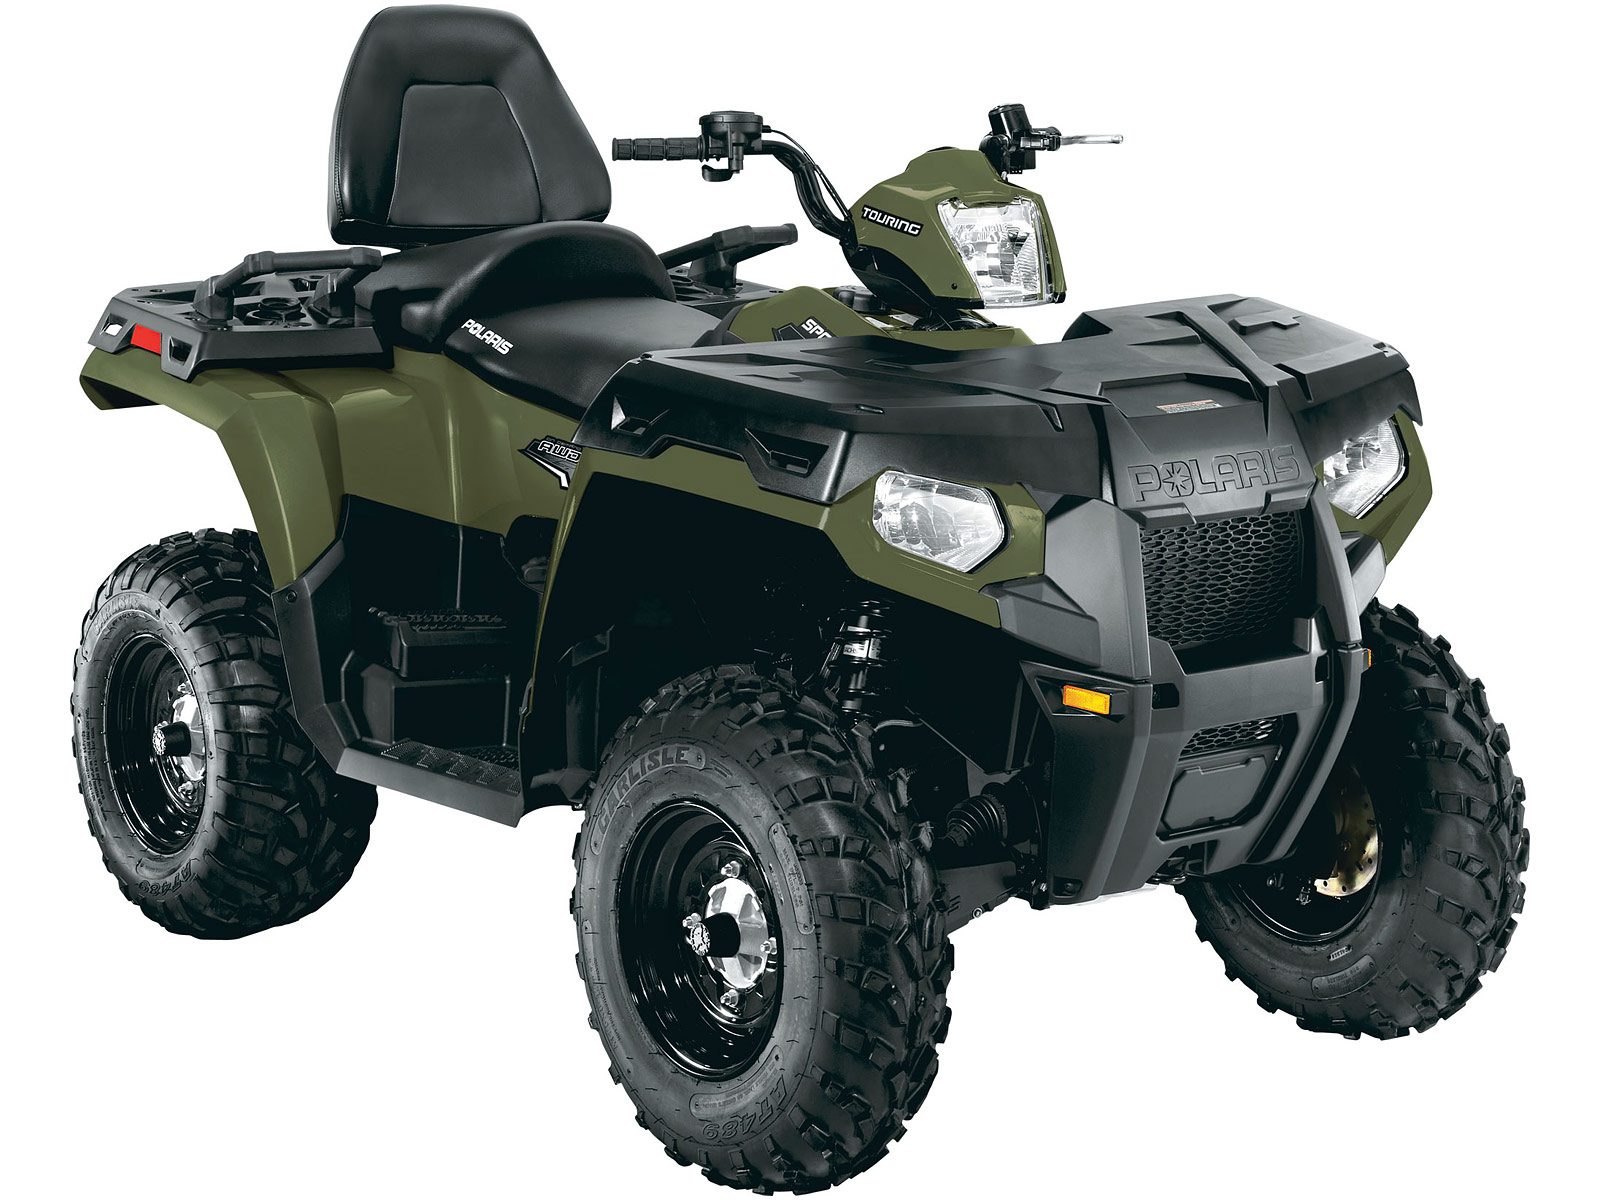 2012 polaris sportsman touring 500ho insurance information. Black Bedroom Furniture Sets. Home Design Ideas